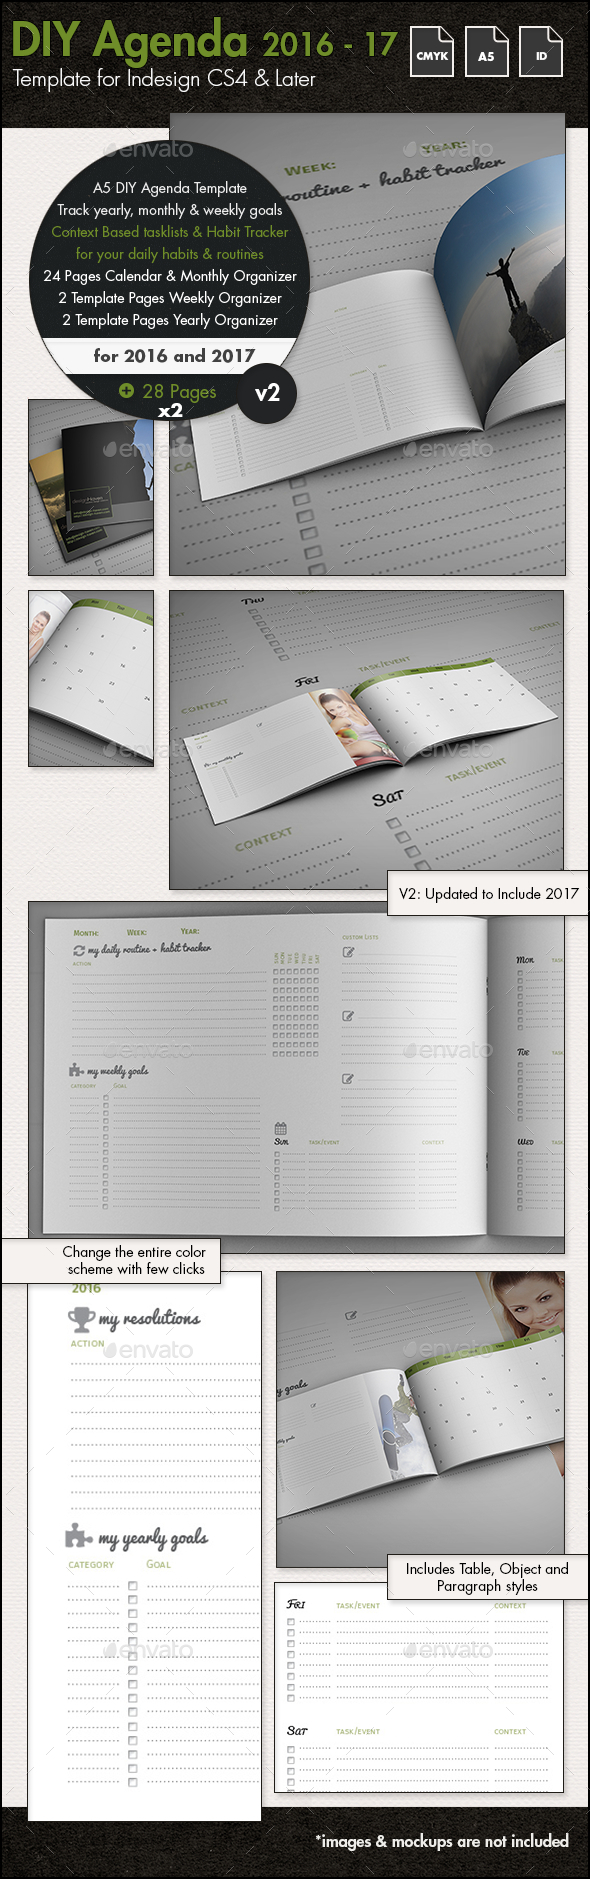 DIY Planner - Calendar Template for 2016 and 2017 - A5 by sthalassinos